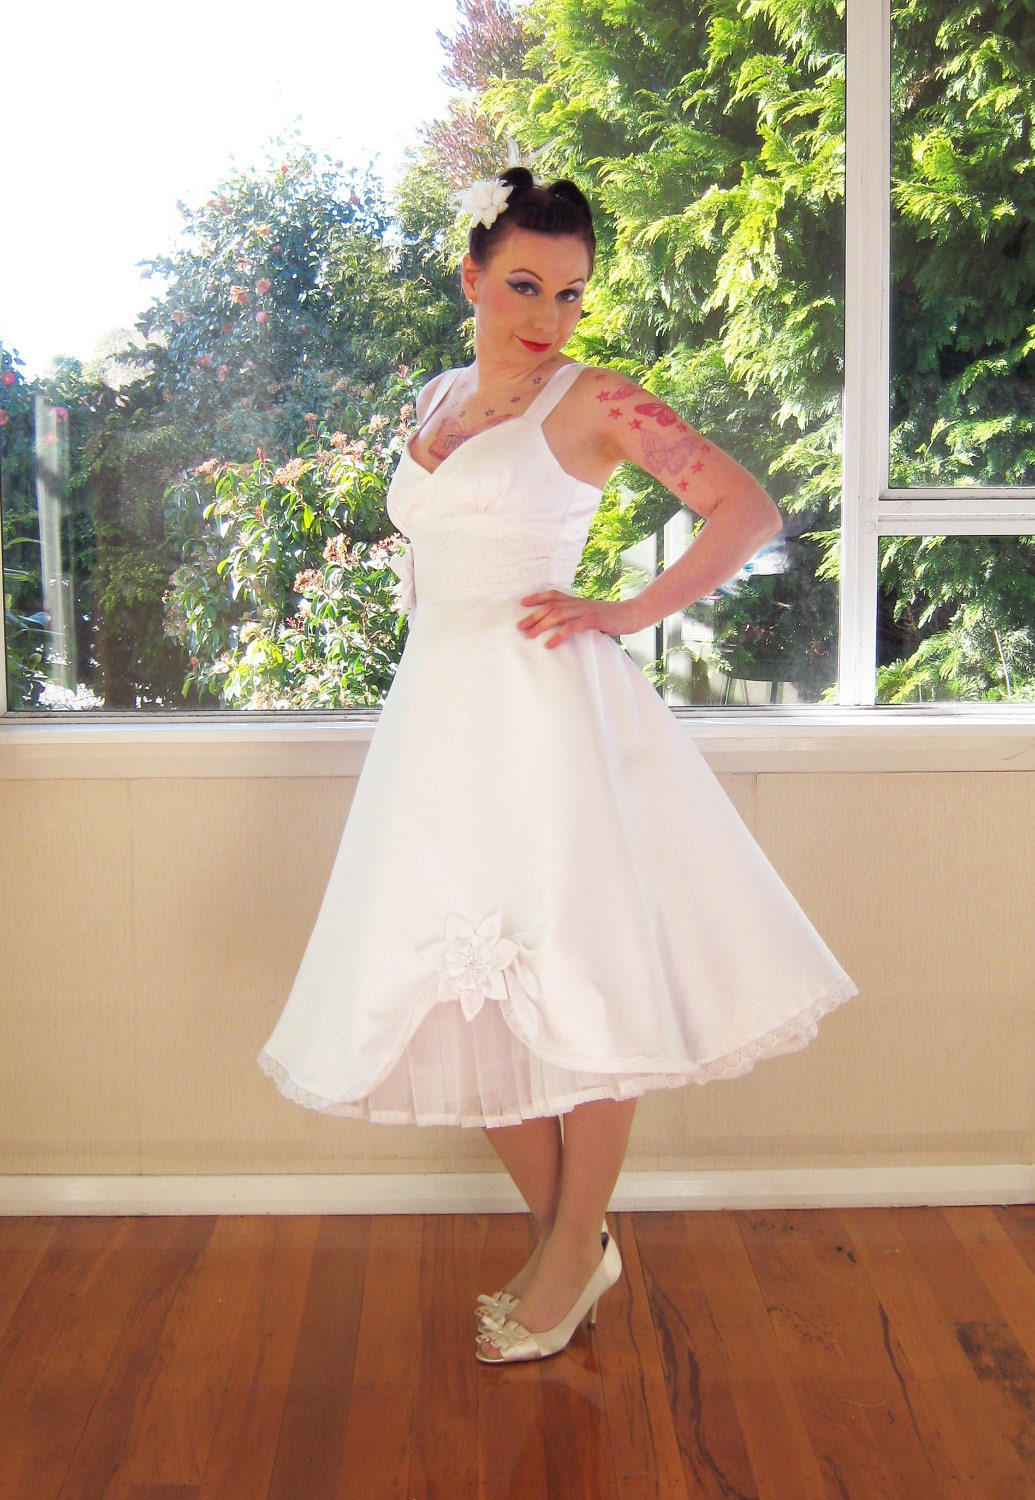 Wedding dress 50s rockabilly pin up full skirt style for Wedding dresses pin up style